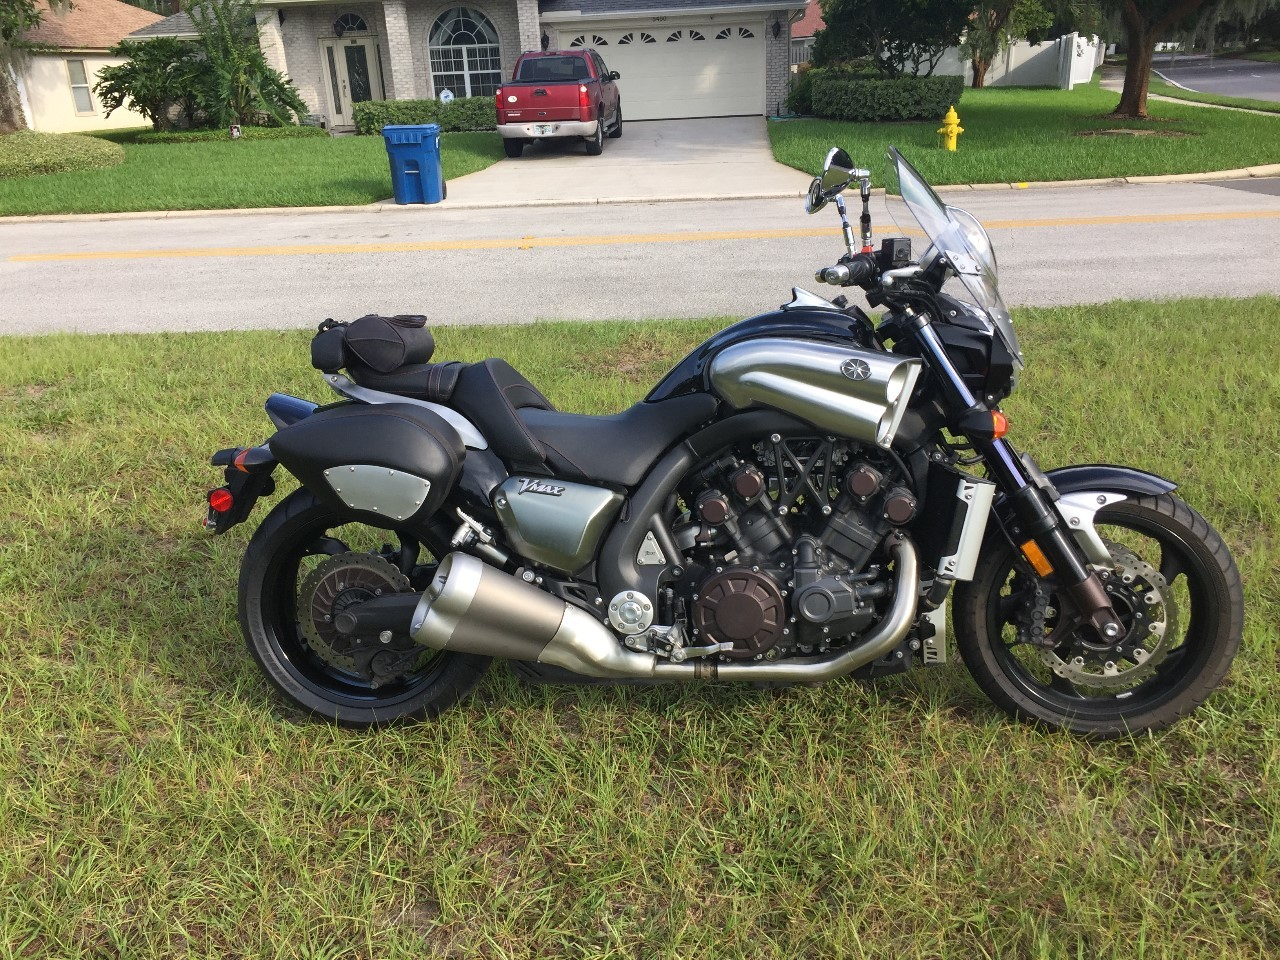 10 S VMAX 1700 Exhaust Motorcycles For Sale - Cycle Trader